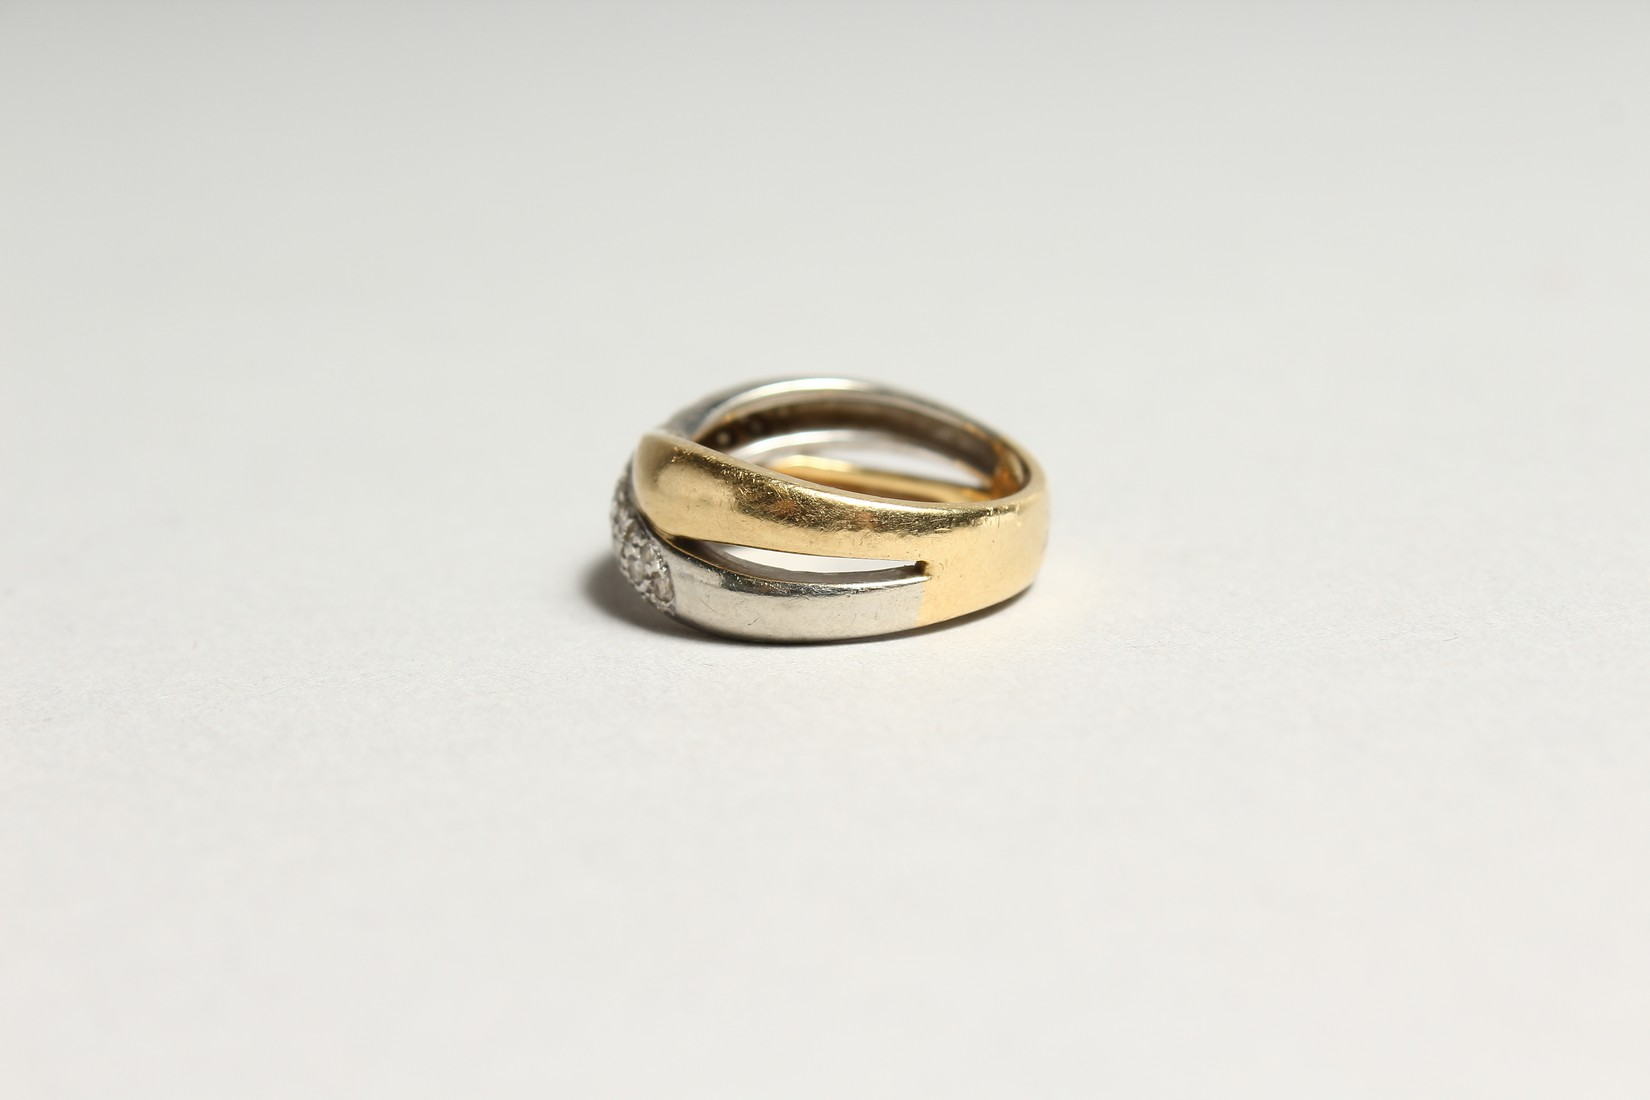 AN 18CT GOLD DIAMOND SET CROSS OVER RING - Image 4 of 6